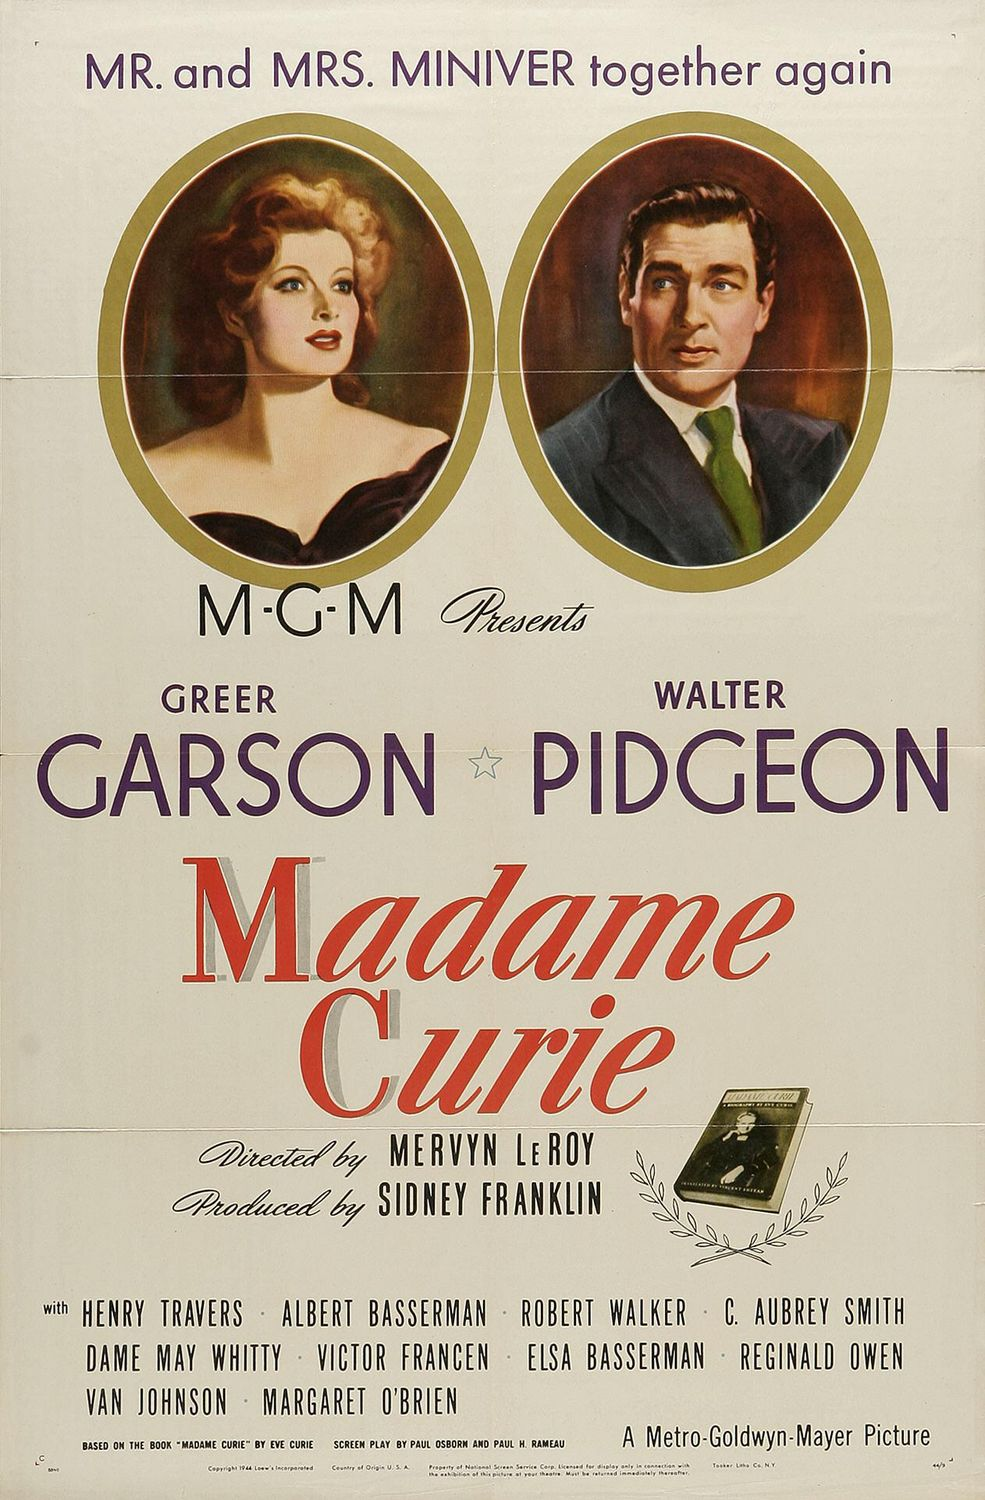 Greer Garson as Madame Curie